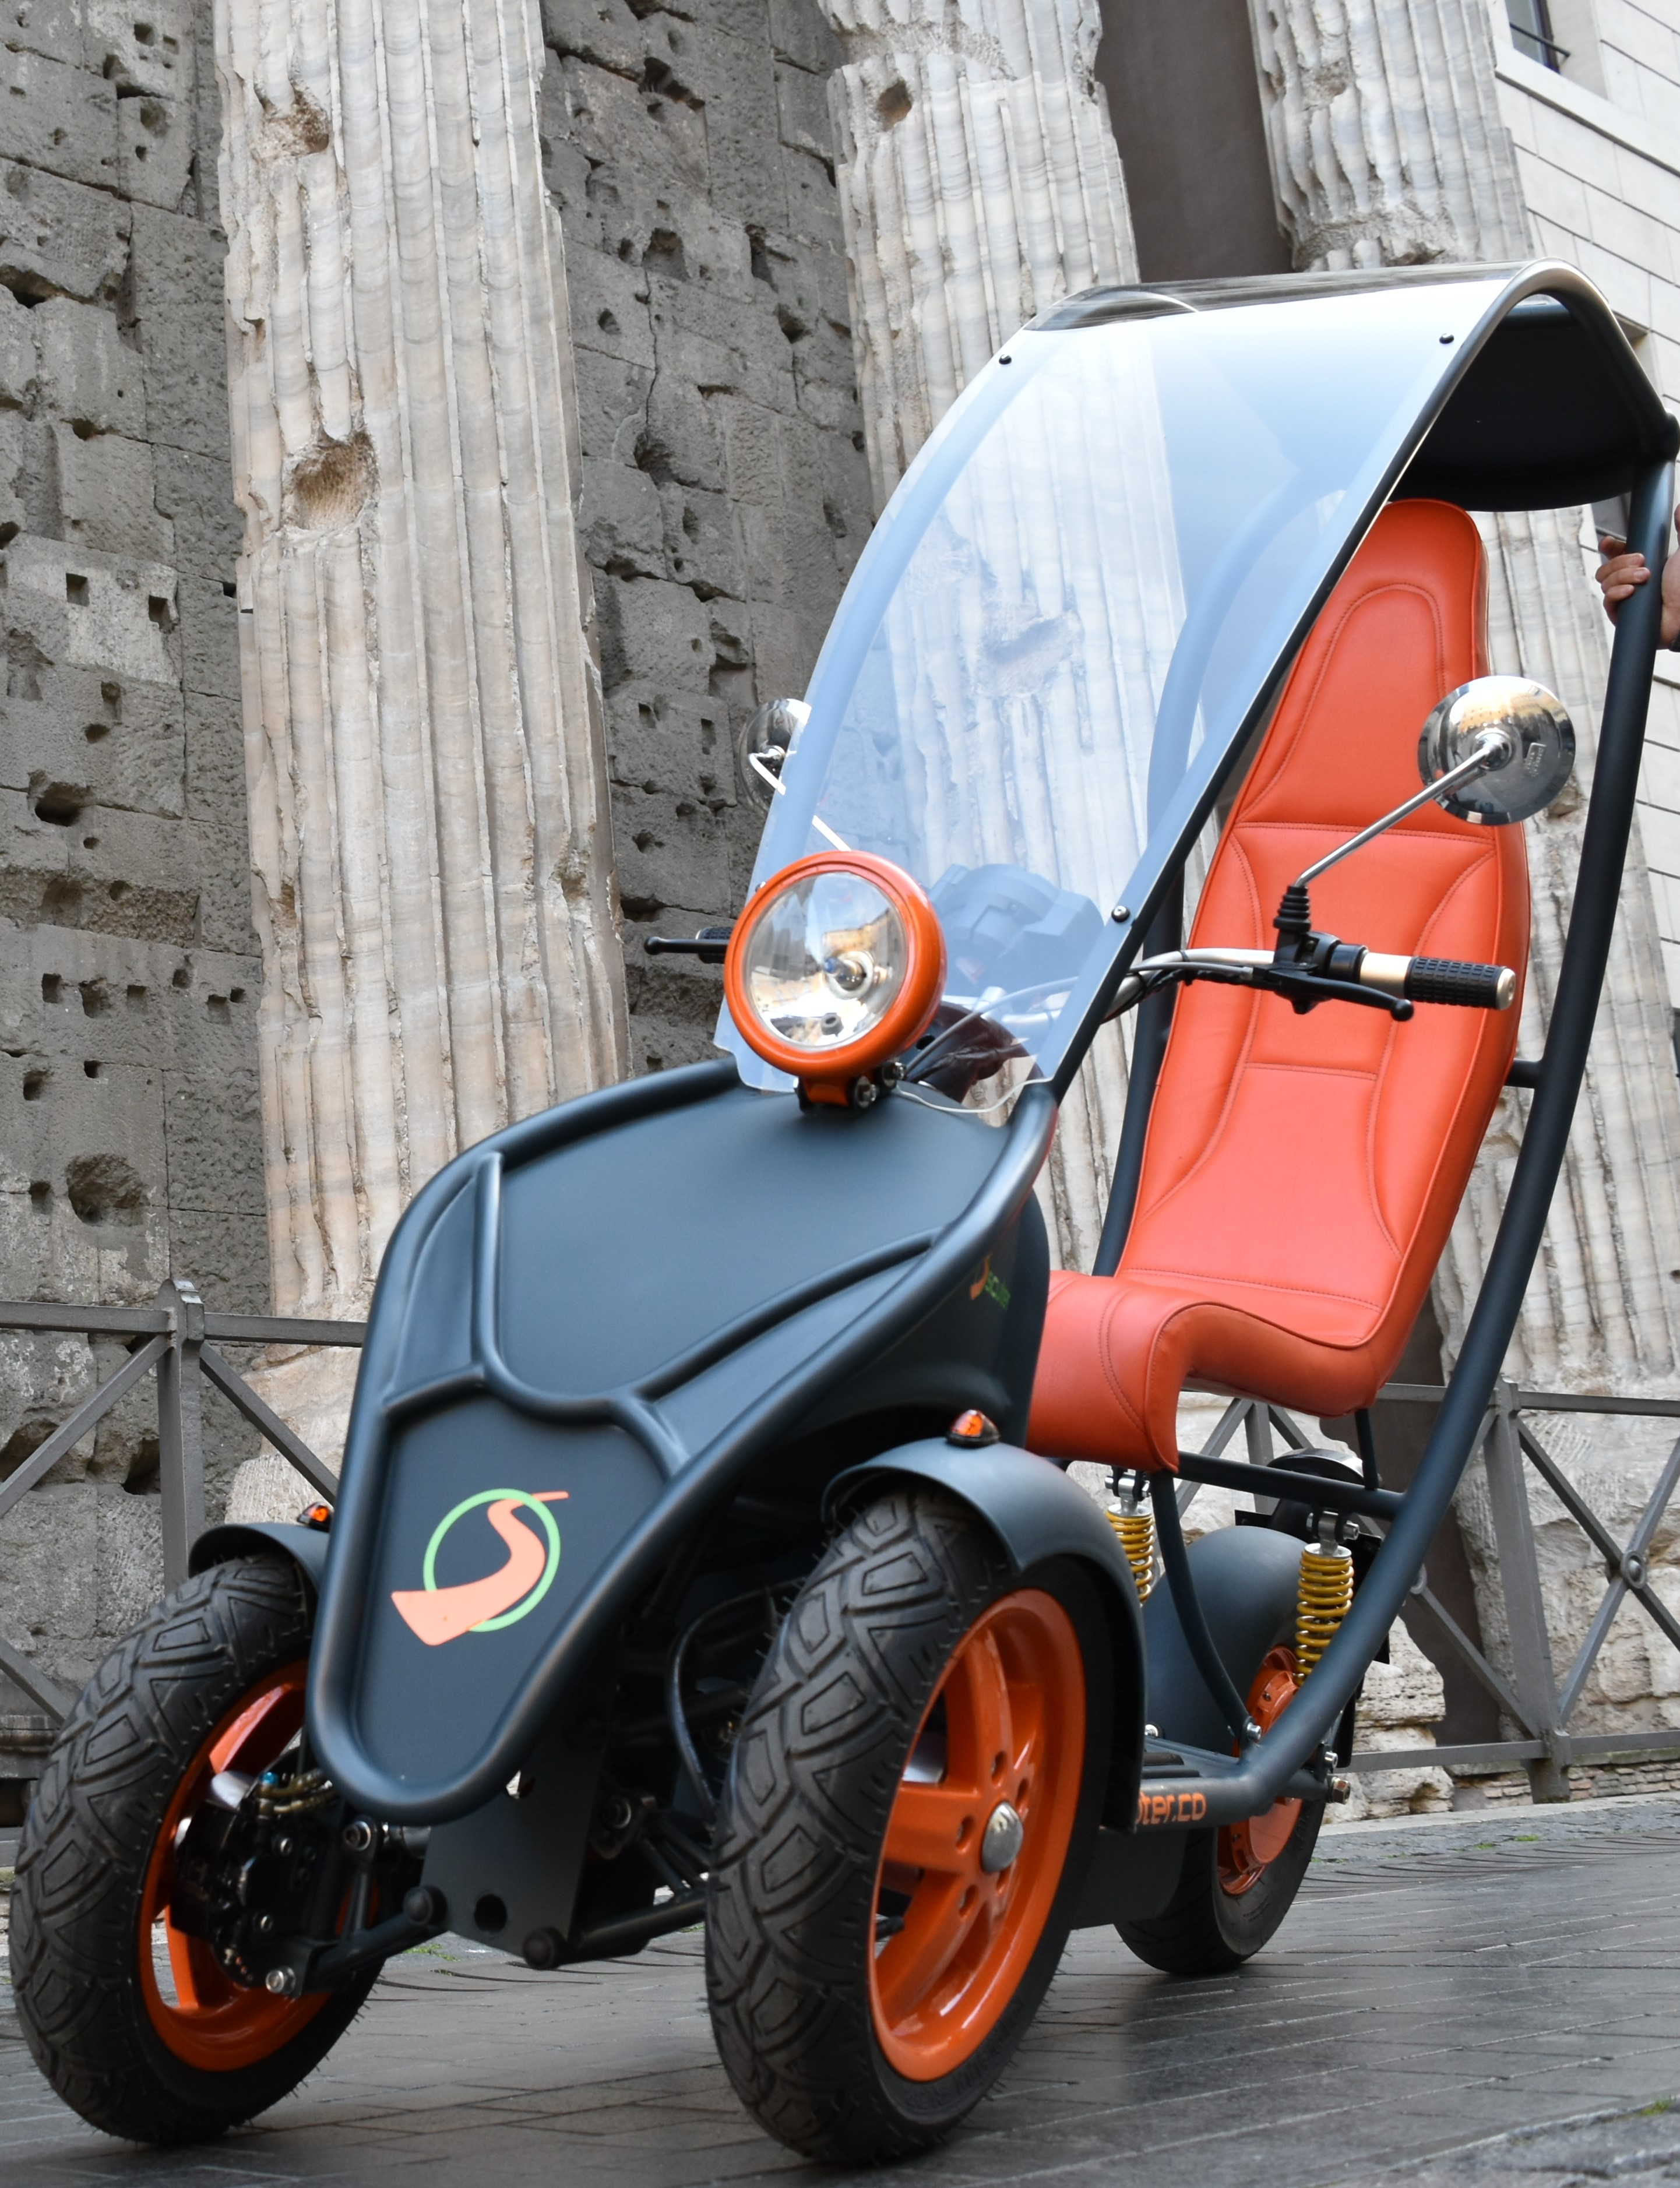 Scuter, the smart e-scooter sharing service that revolutions the urban commuting